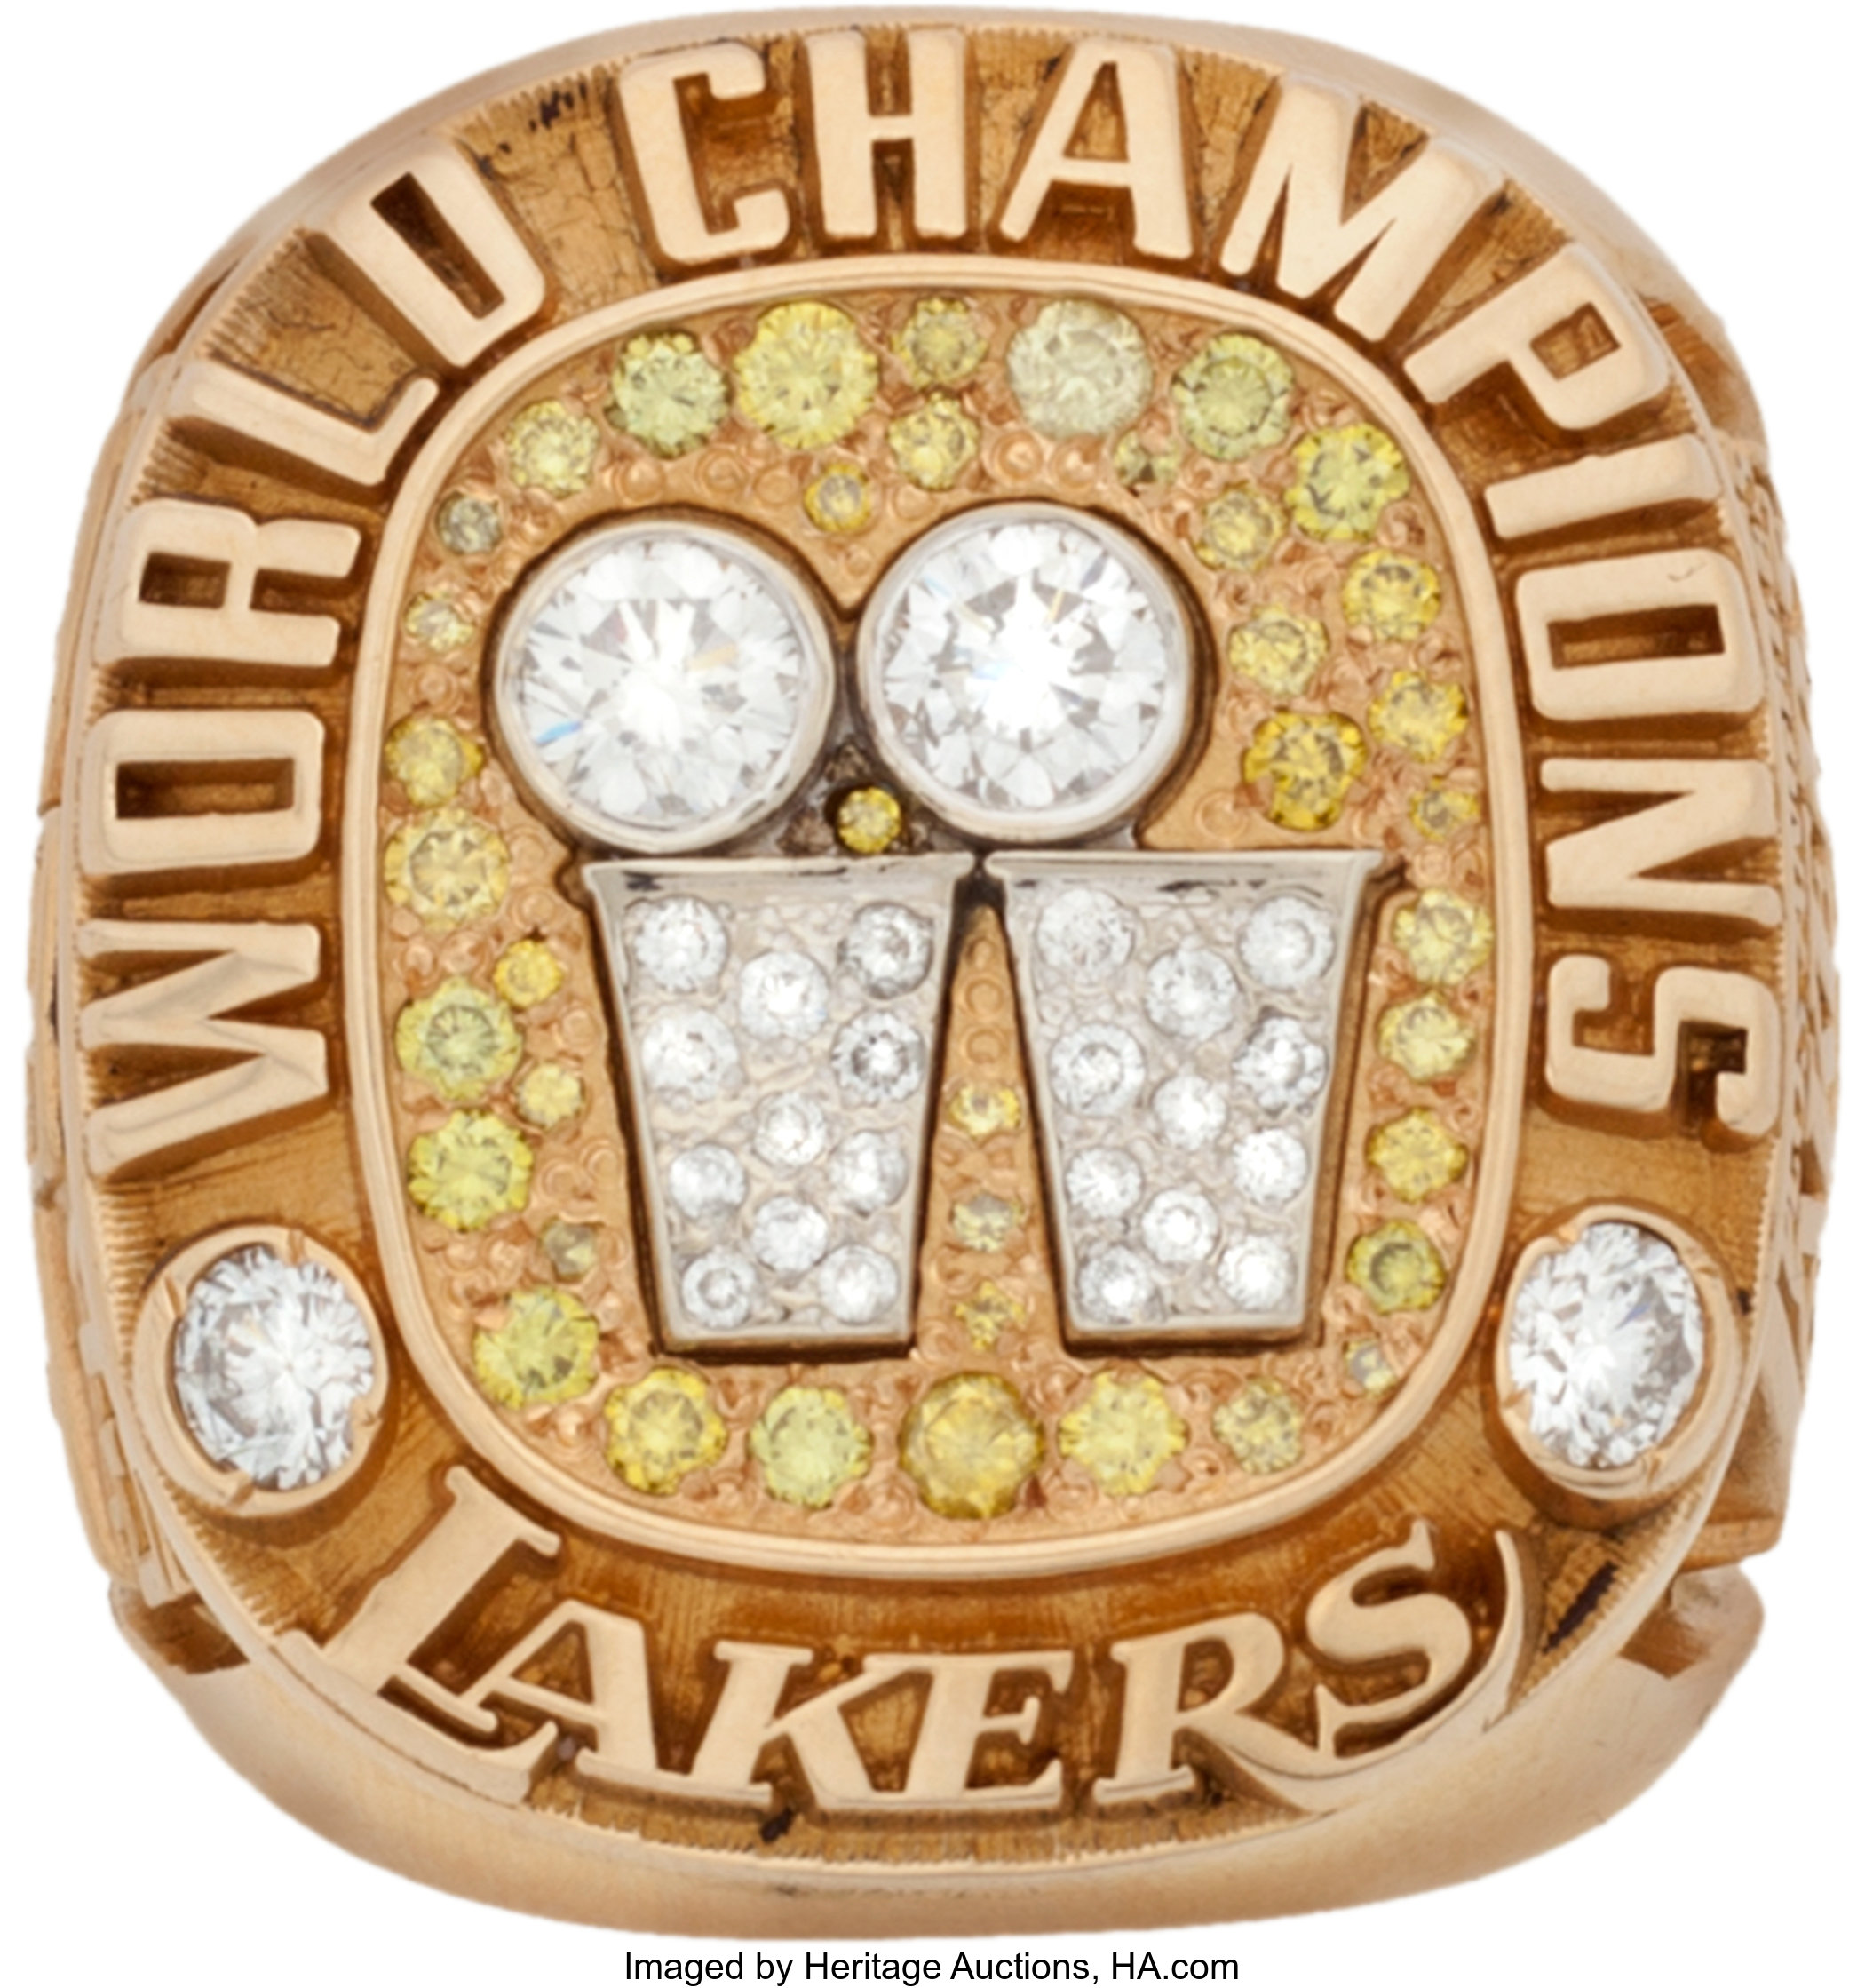 2001 Los Angeles Lakers Nba Championship Ring Basketball Lot 80122 Heritage Auctions